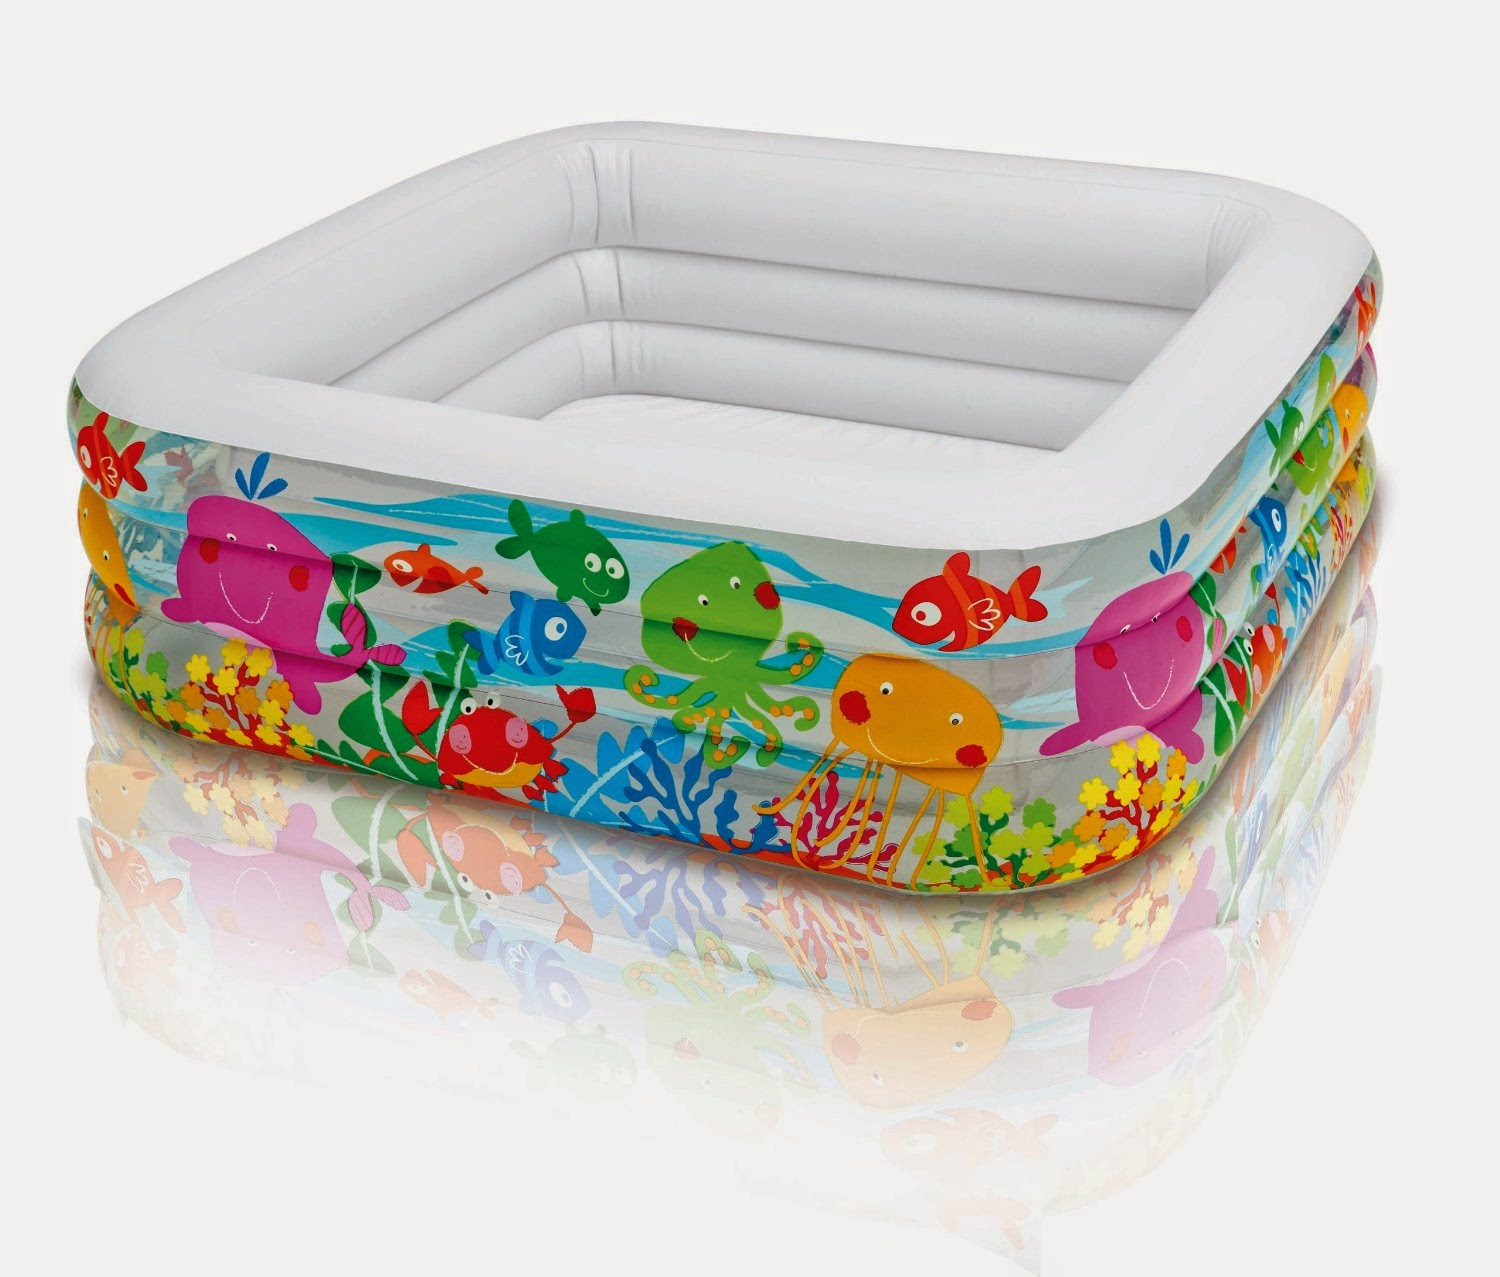 Plastic swimming pools for kids trend for Plastic swimming pool